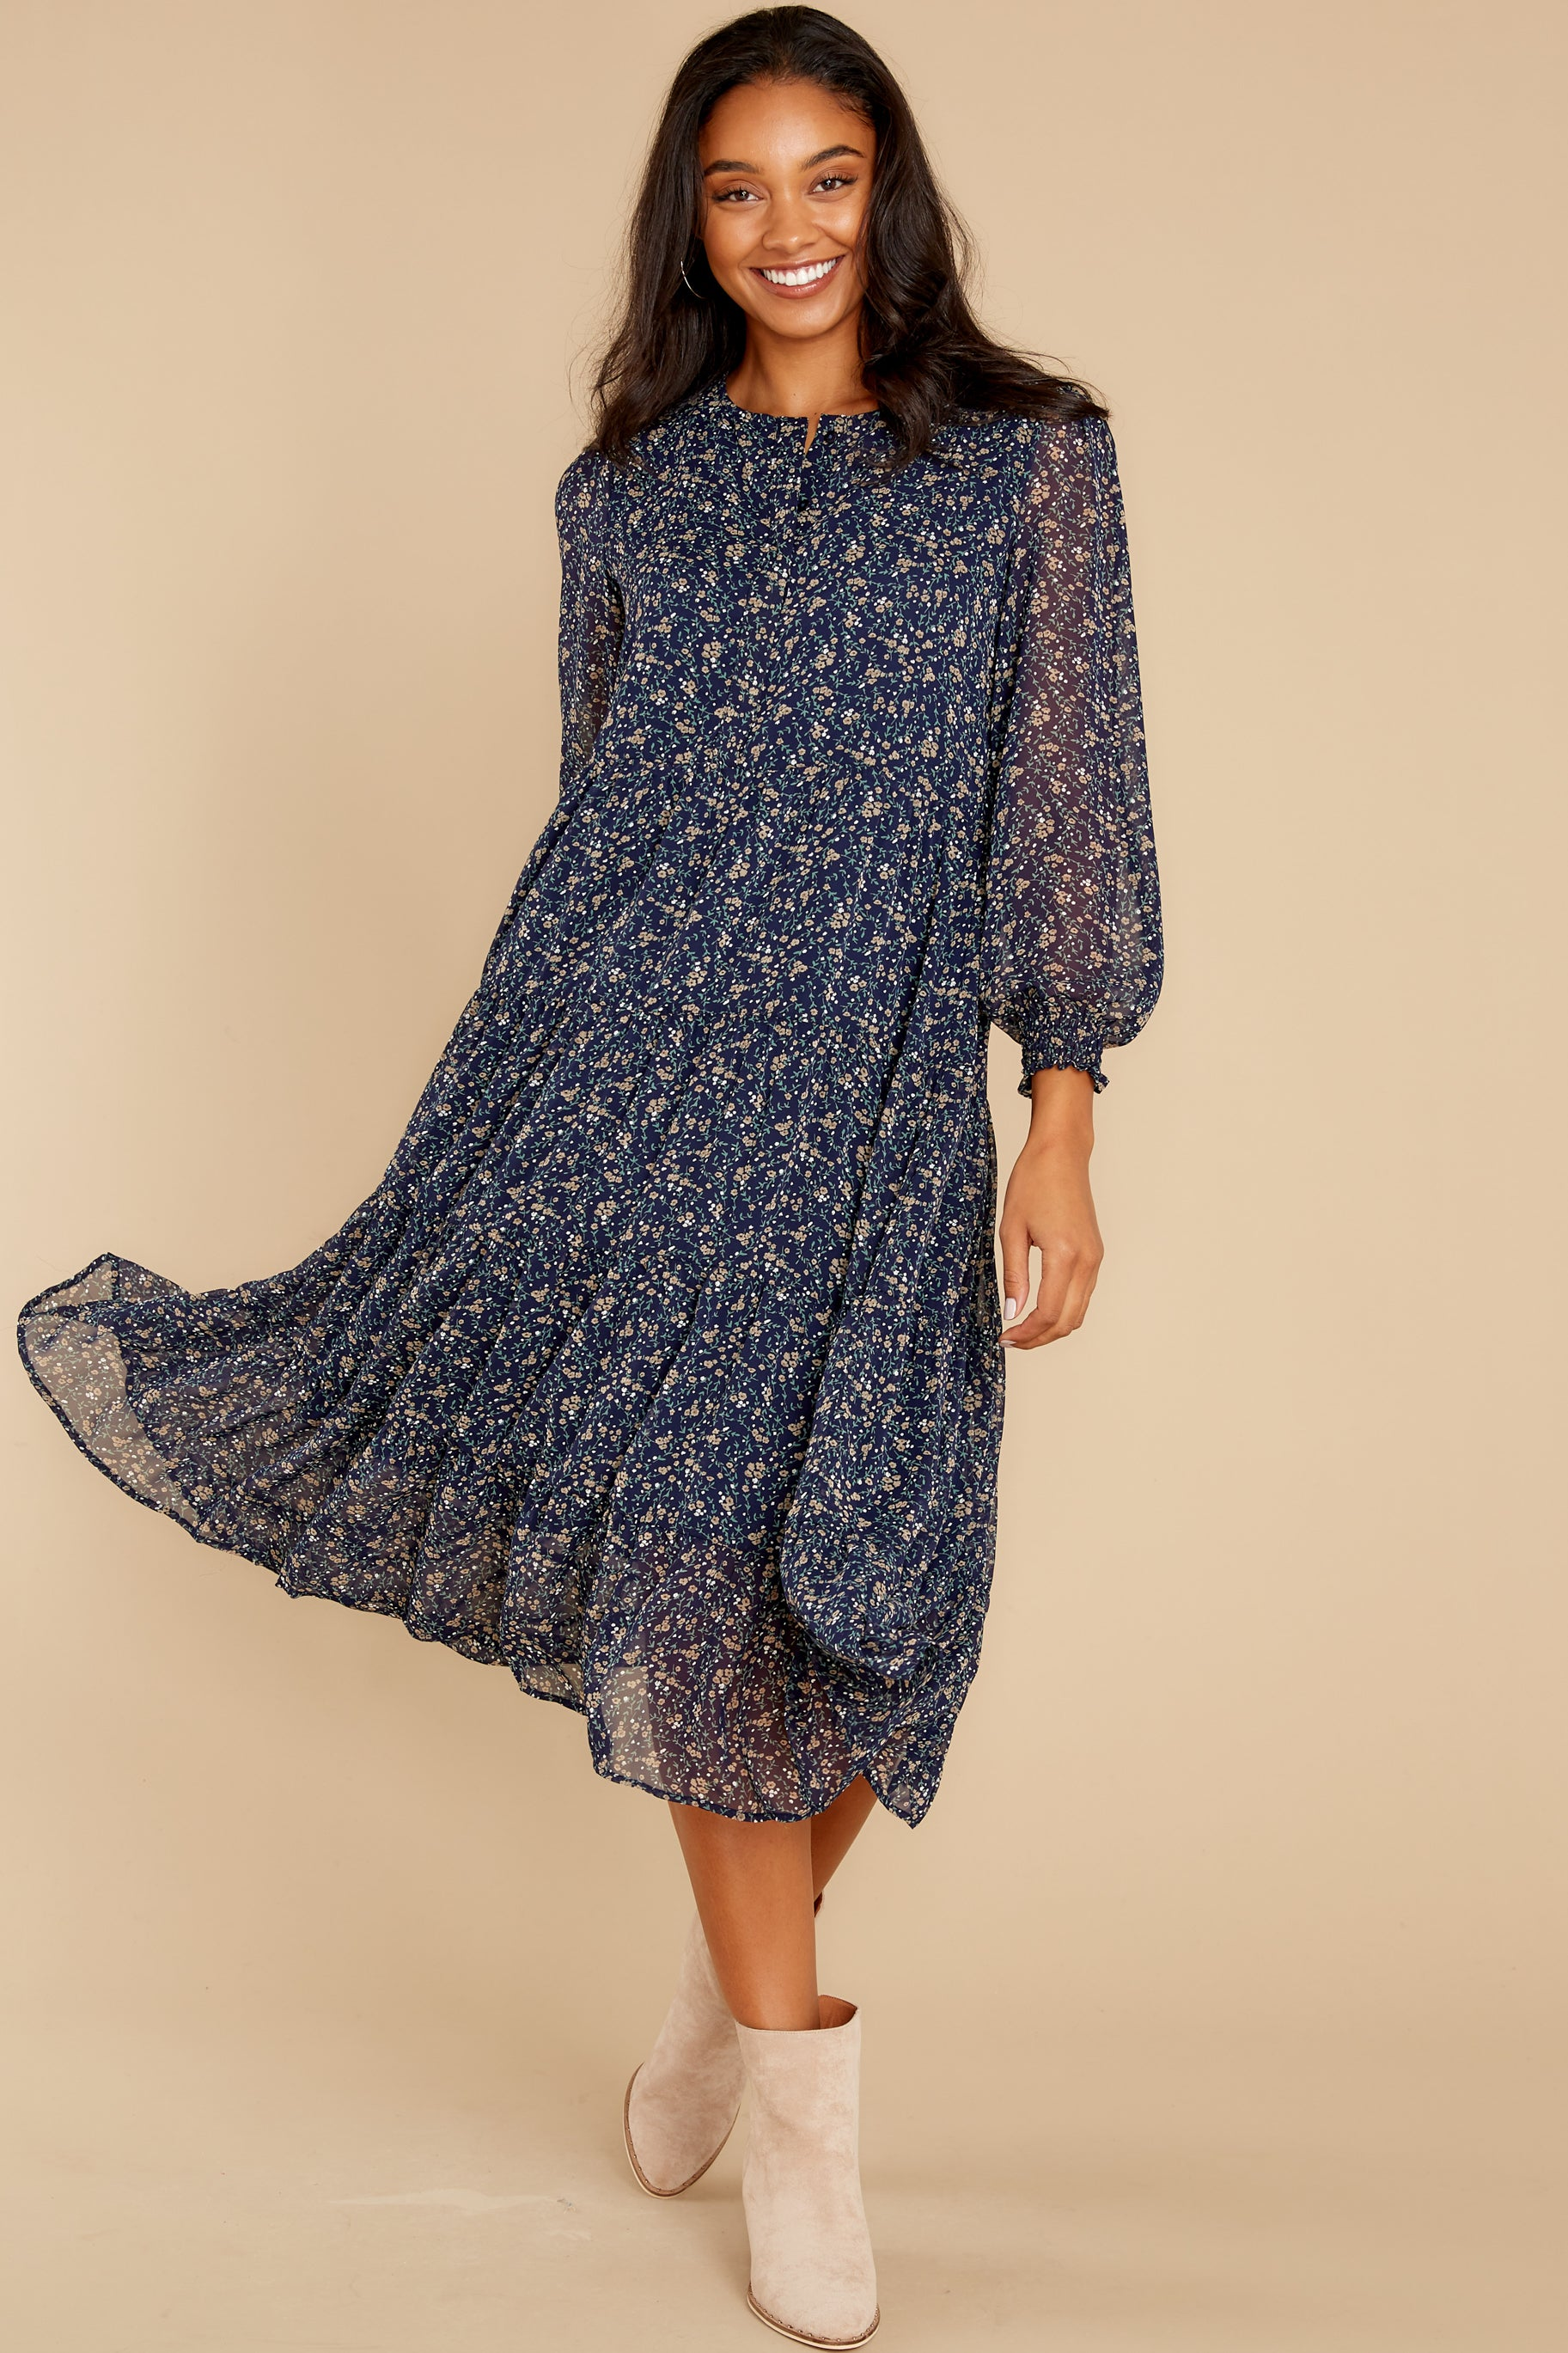 2 So It Goes Navy Floral Print Midi Dress at reddress.com